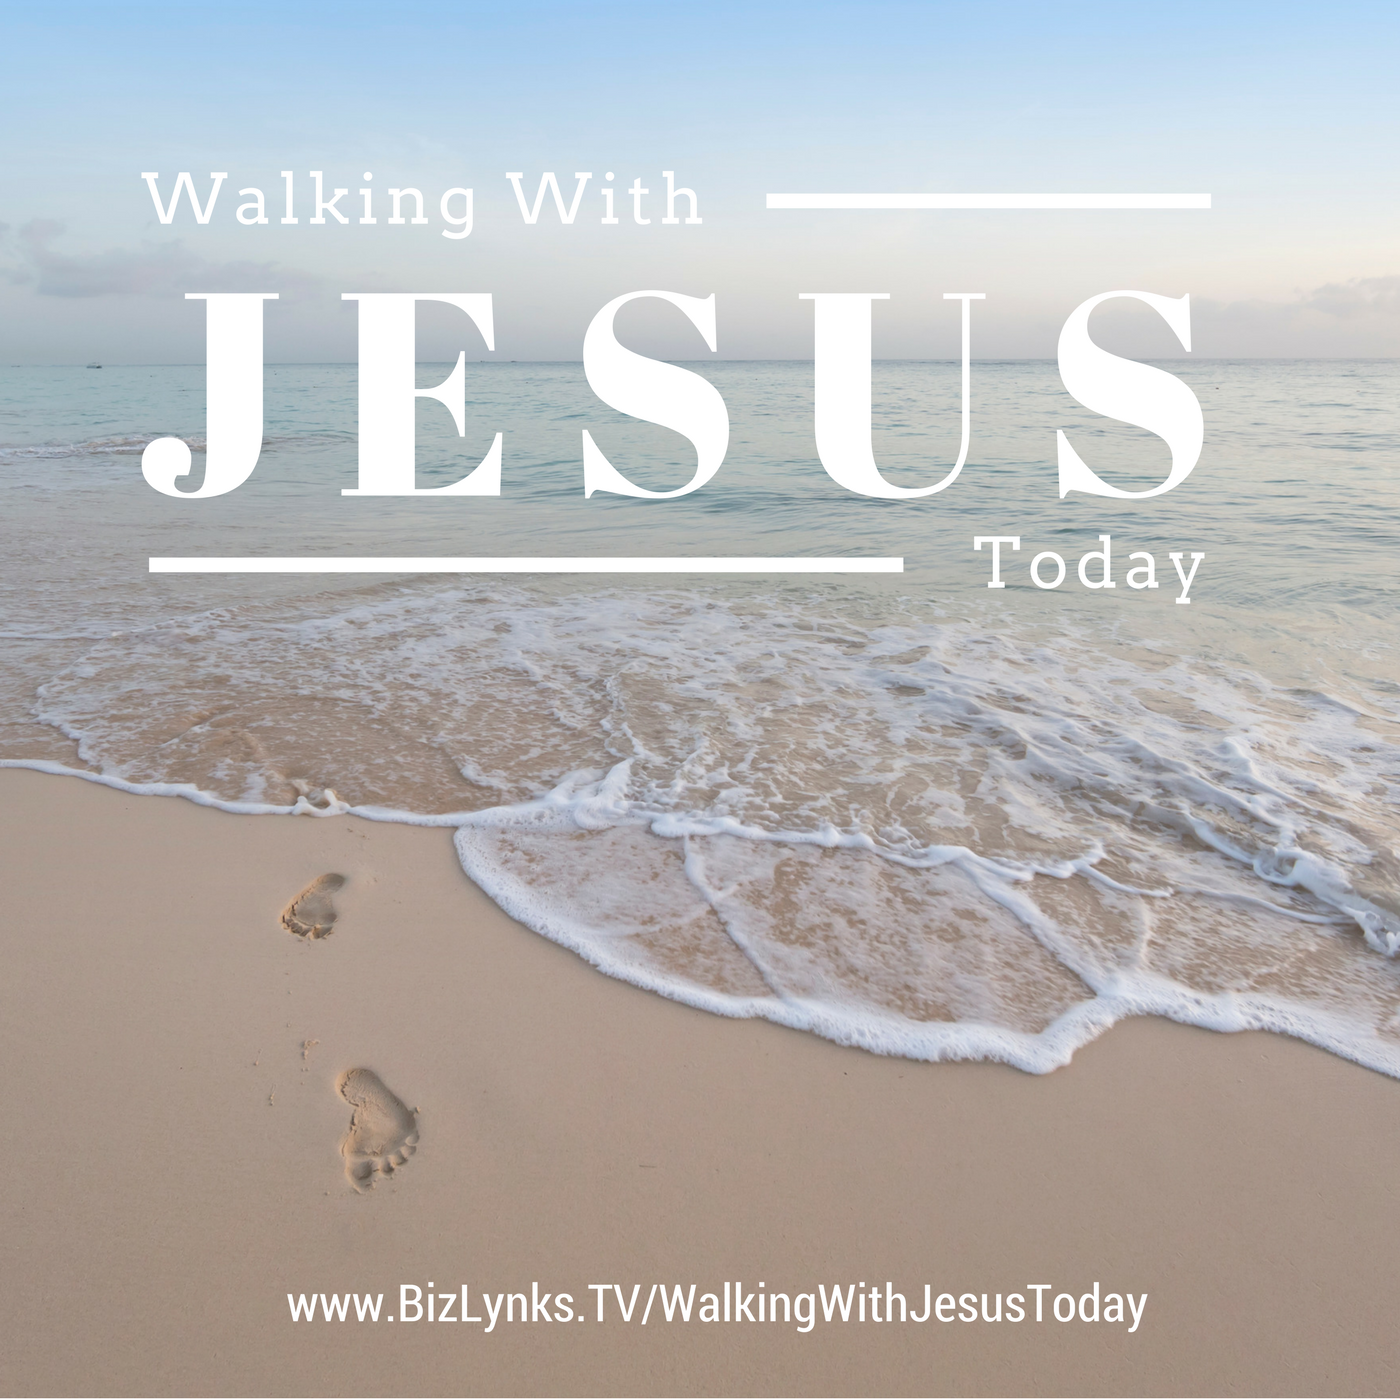 Walking with Jesus Today  | BizLynks TV Network